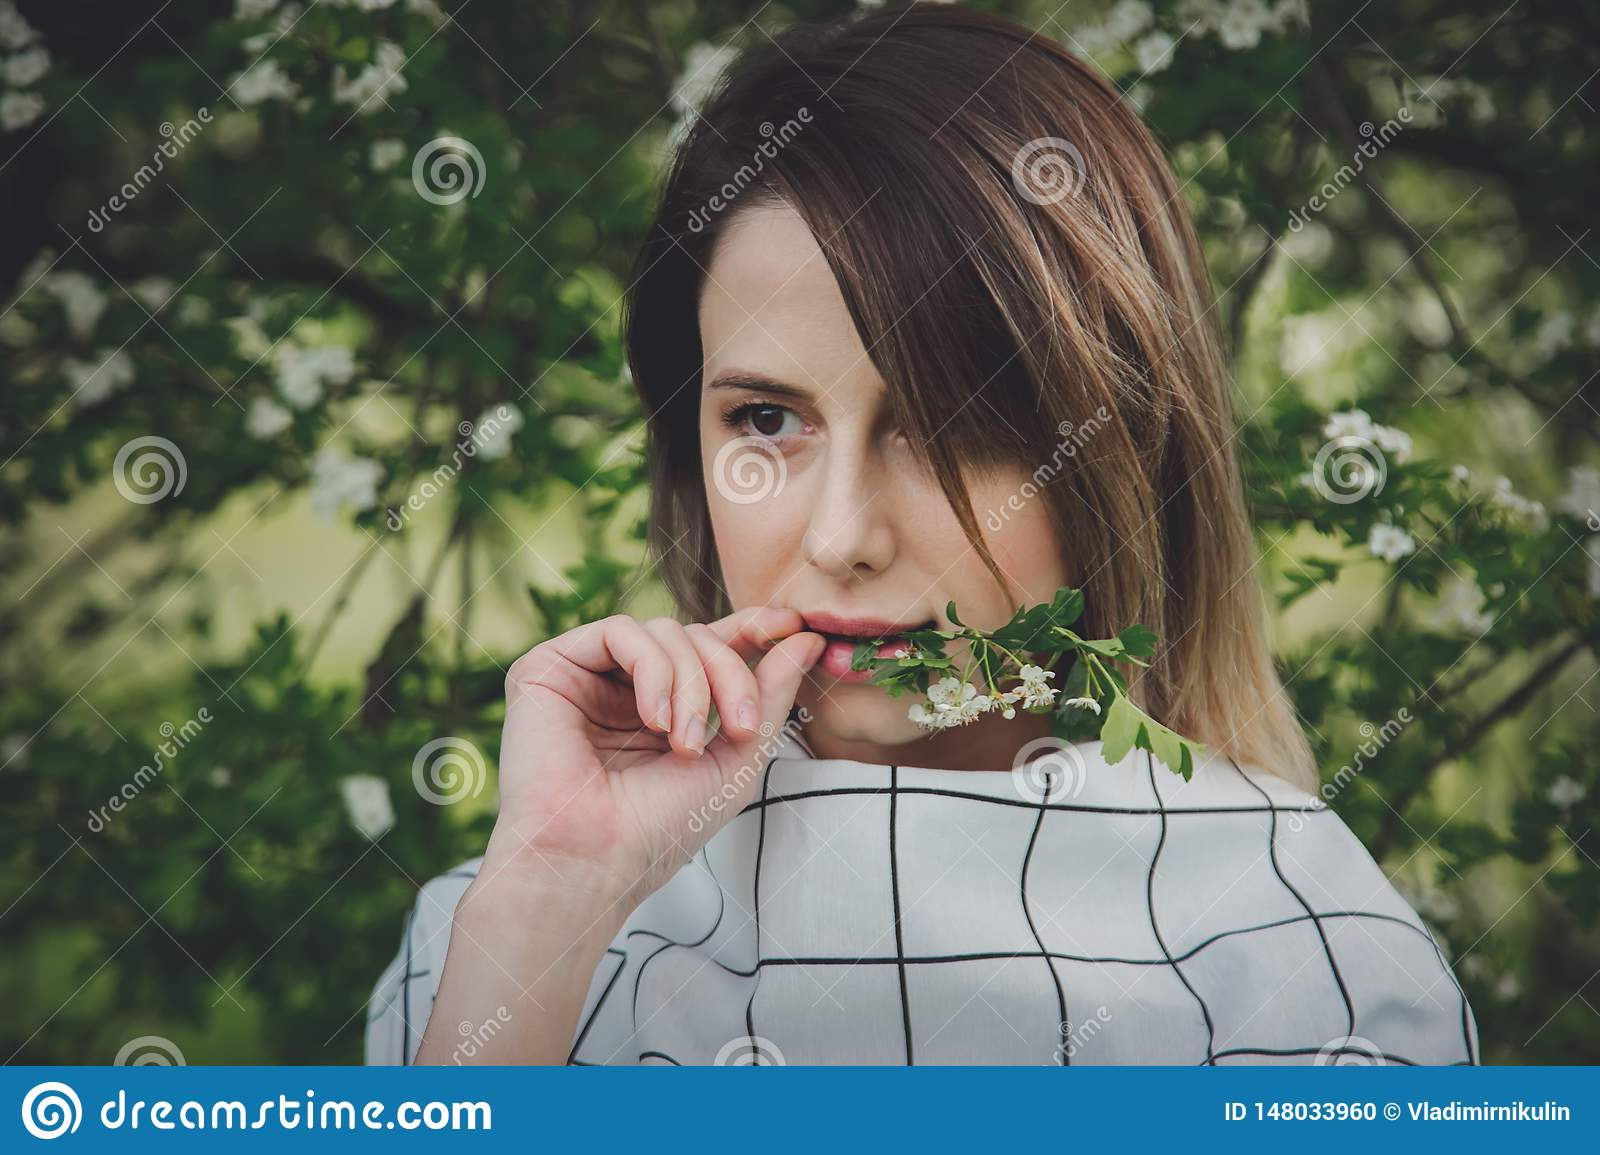 Young woman in a checkered dressstay near a flowering tree